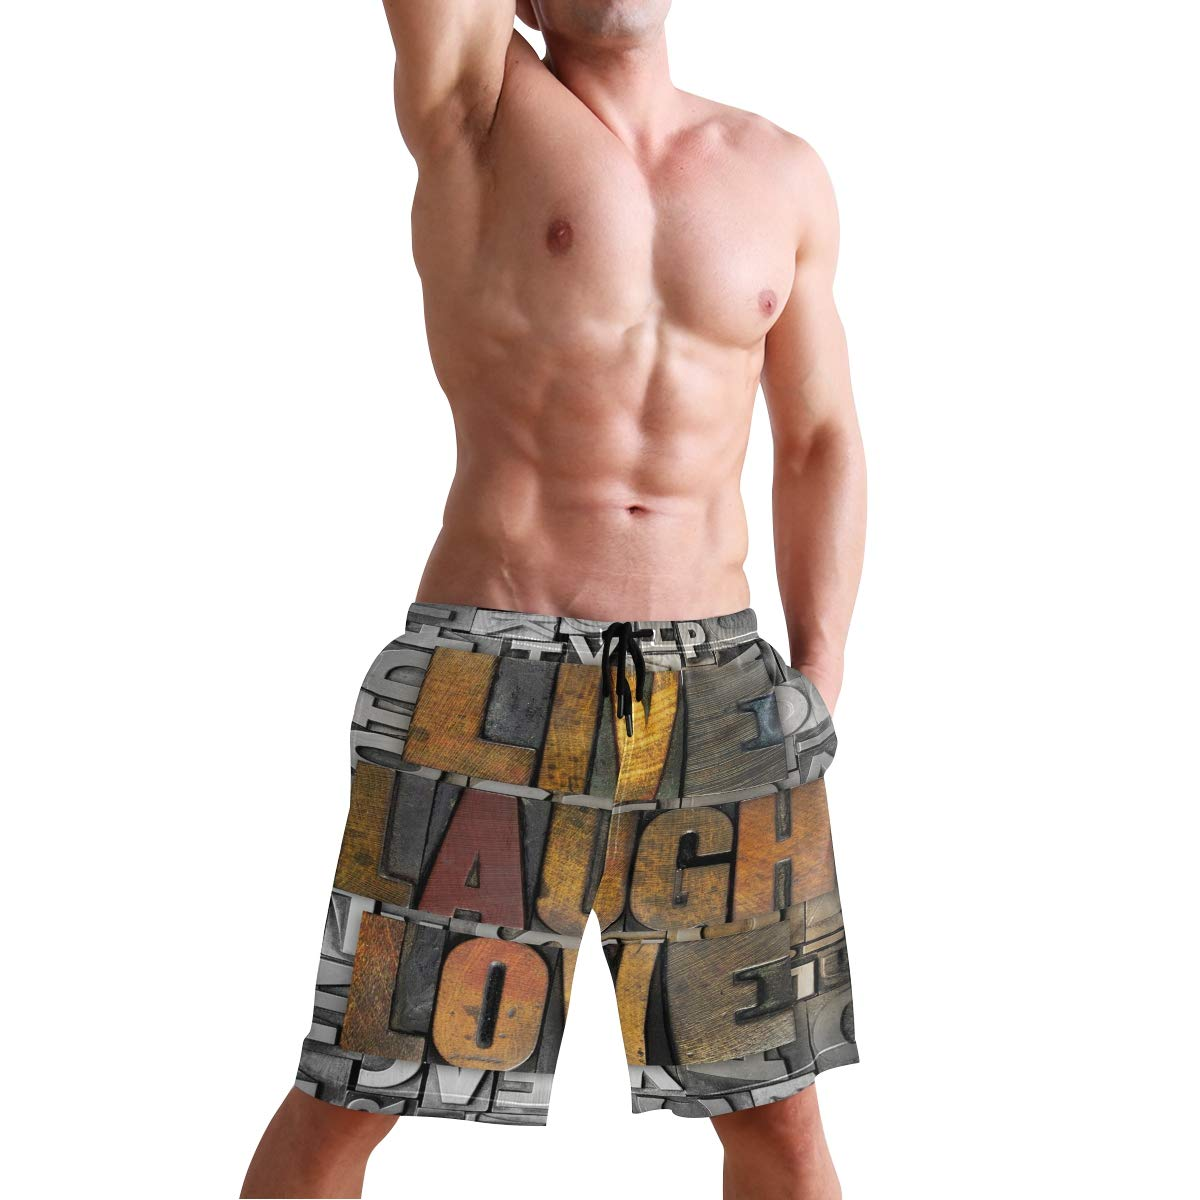 COVASA Mens Summer ShortsLive Laugh Love Saying Promoting The Sacred Values of